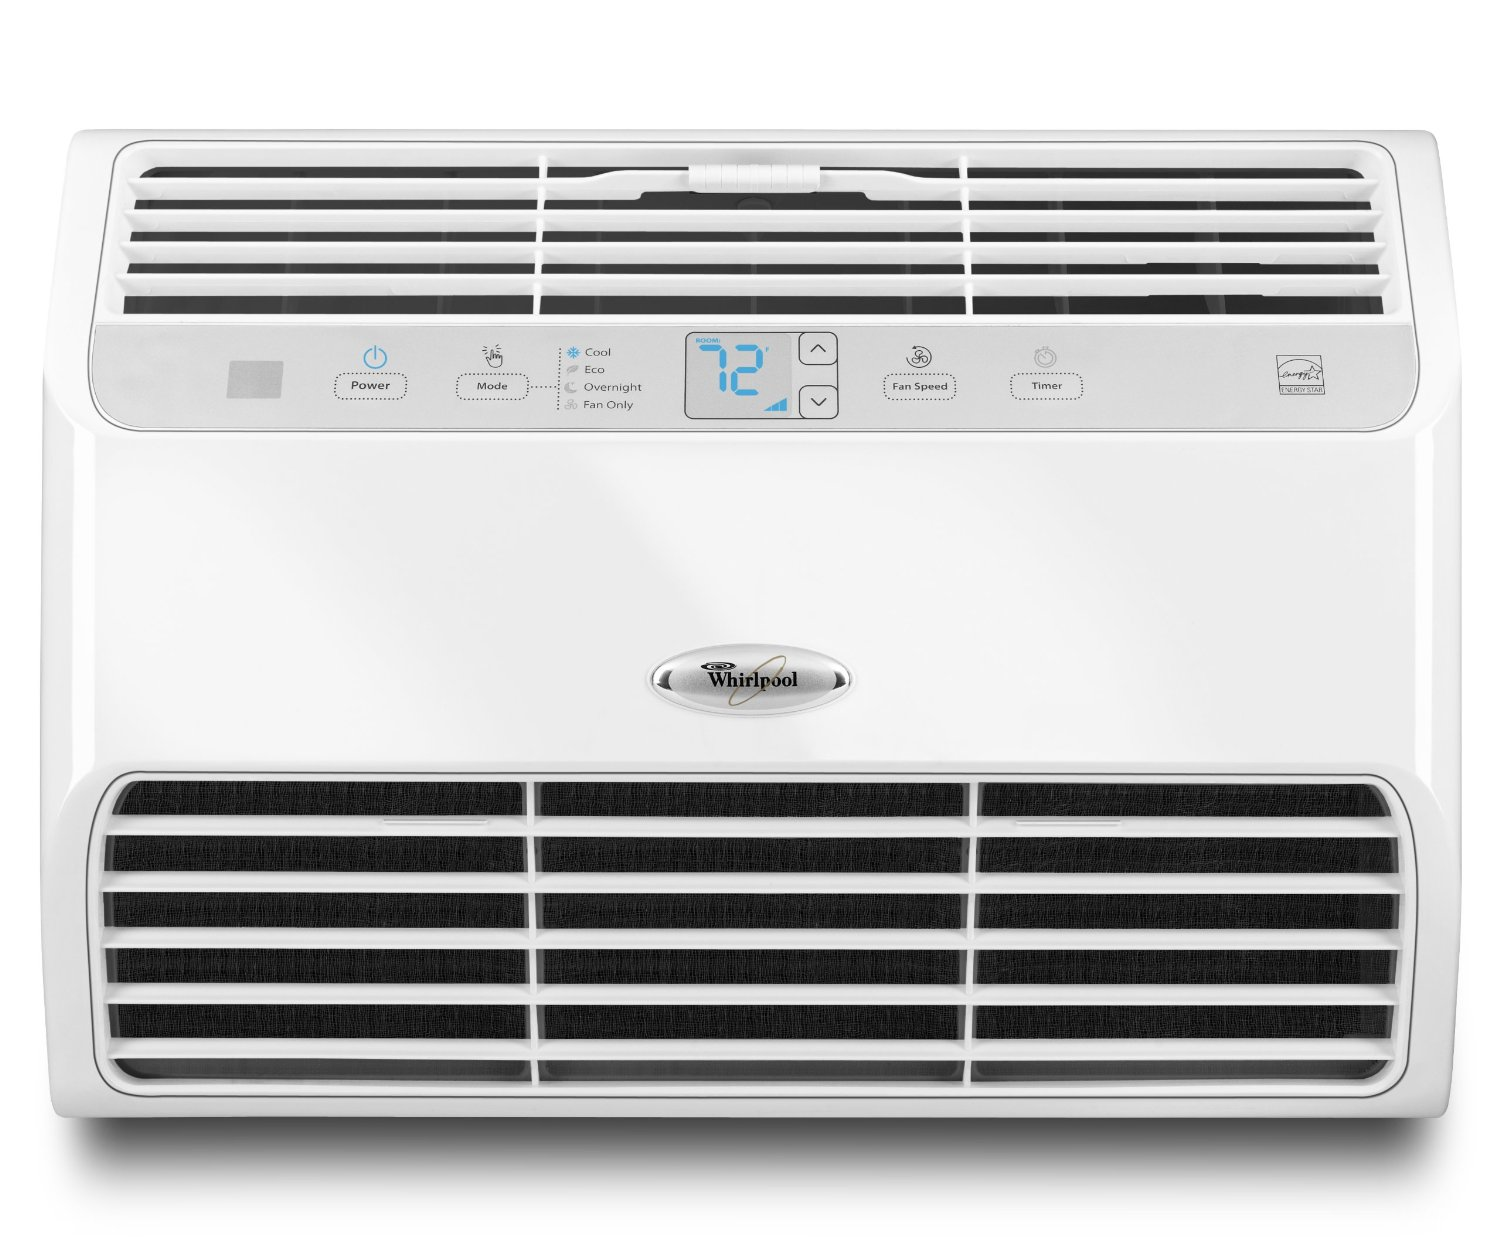 : W5WCE128YW Style: 12 000 BTU ENERGY STAR® Room Air Conditioner #2469A7